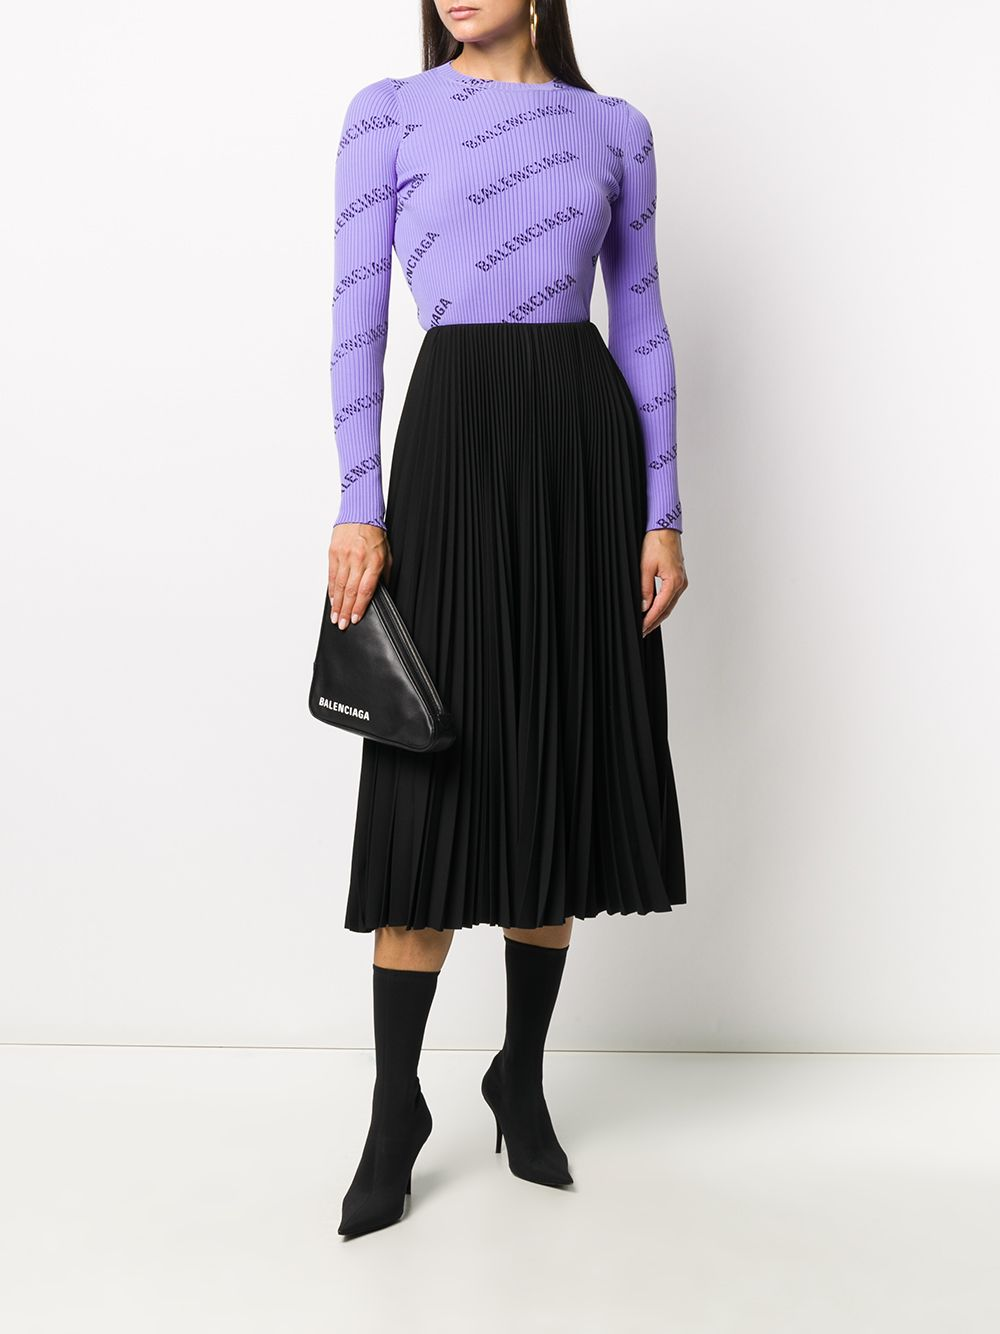 Black pleated midi skirt featuring pleat detailing BALENCIAGA |  | 643760-TJO461000